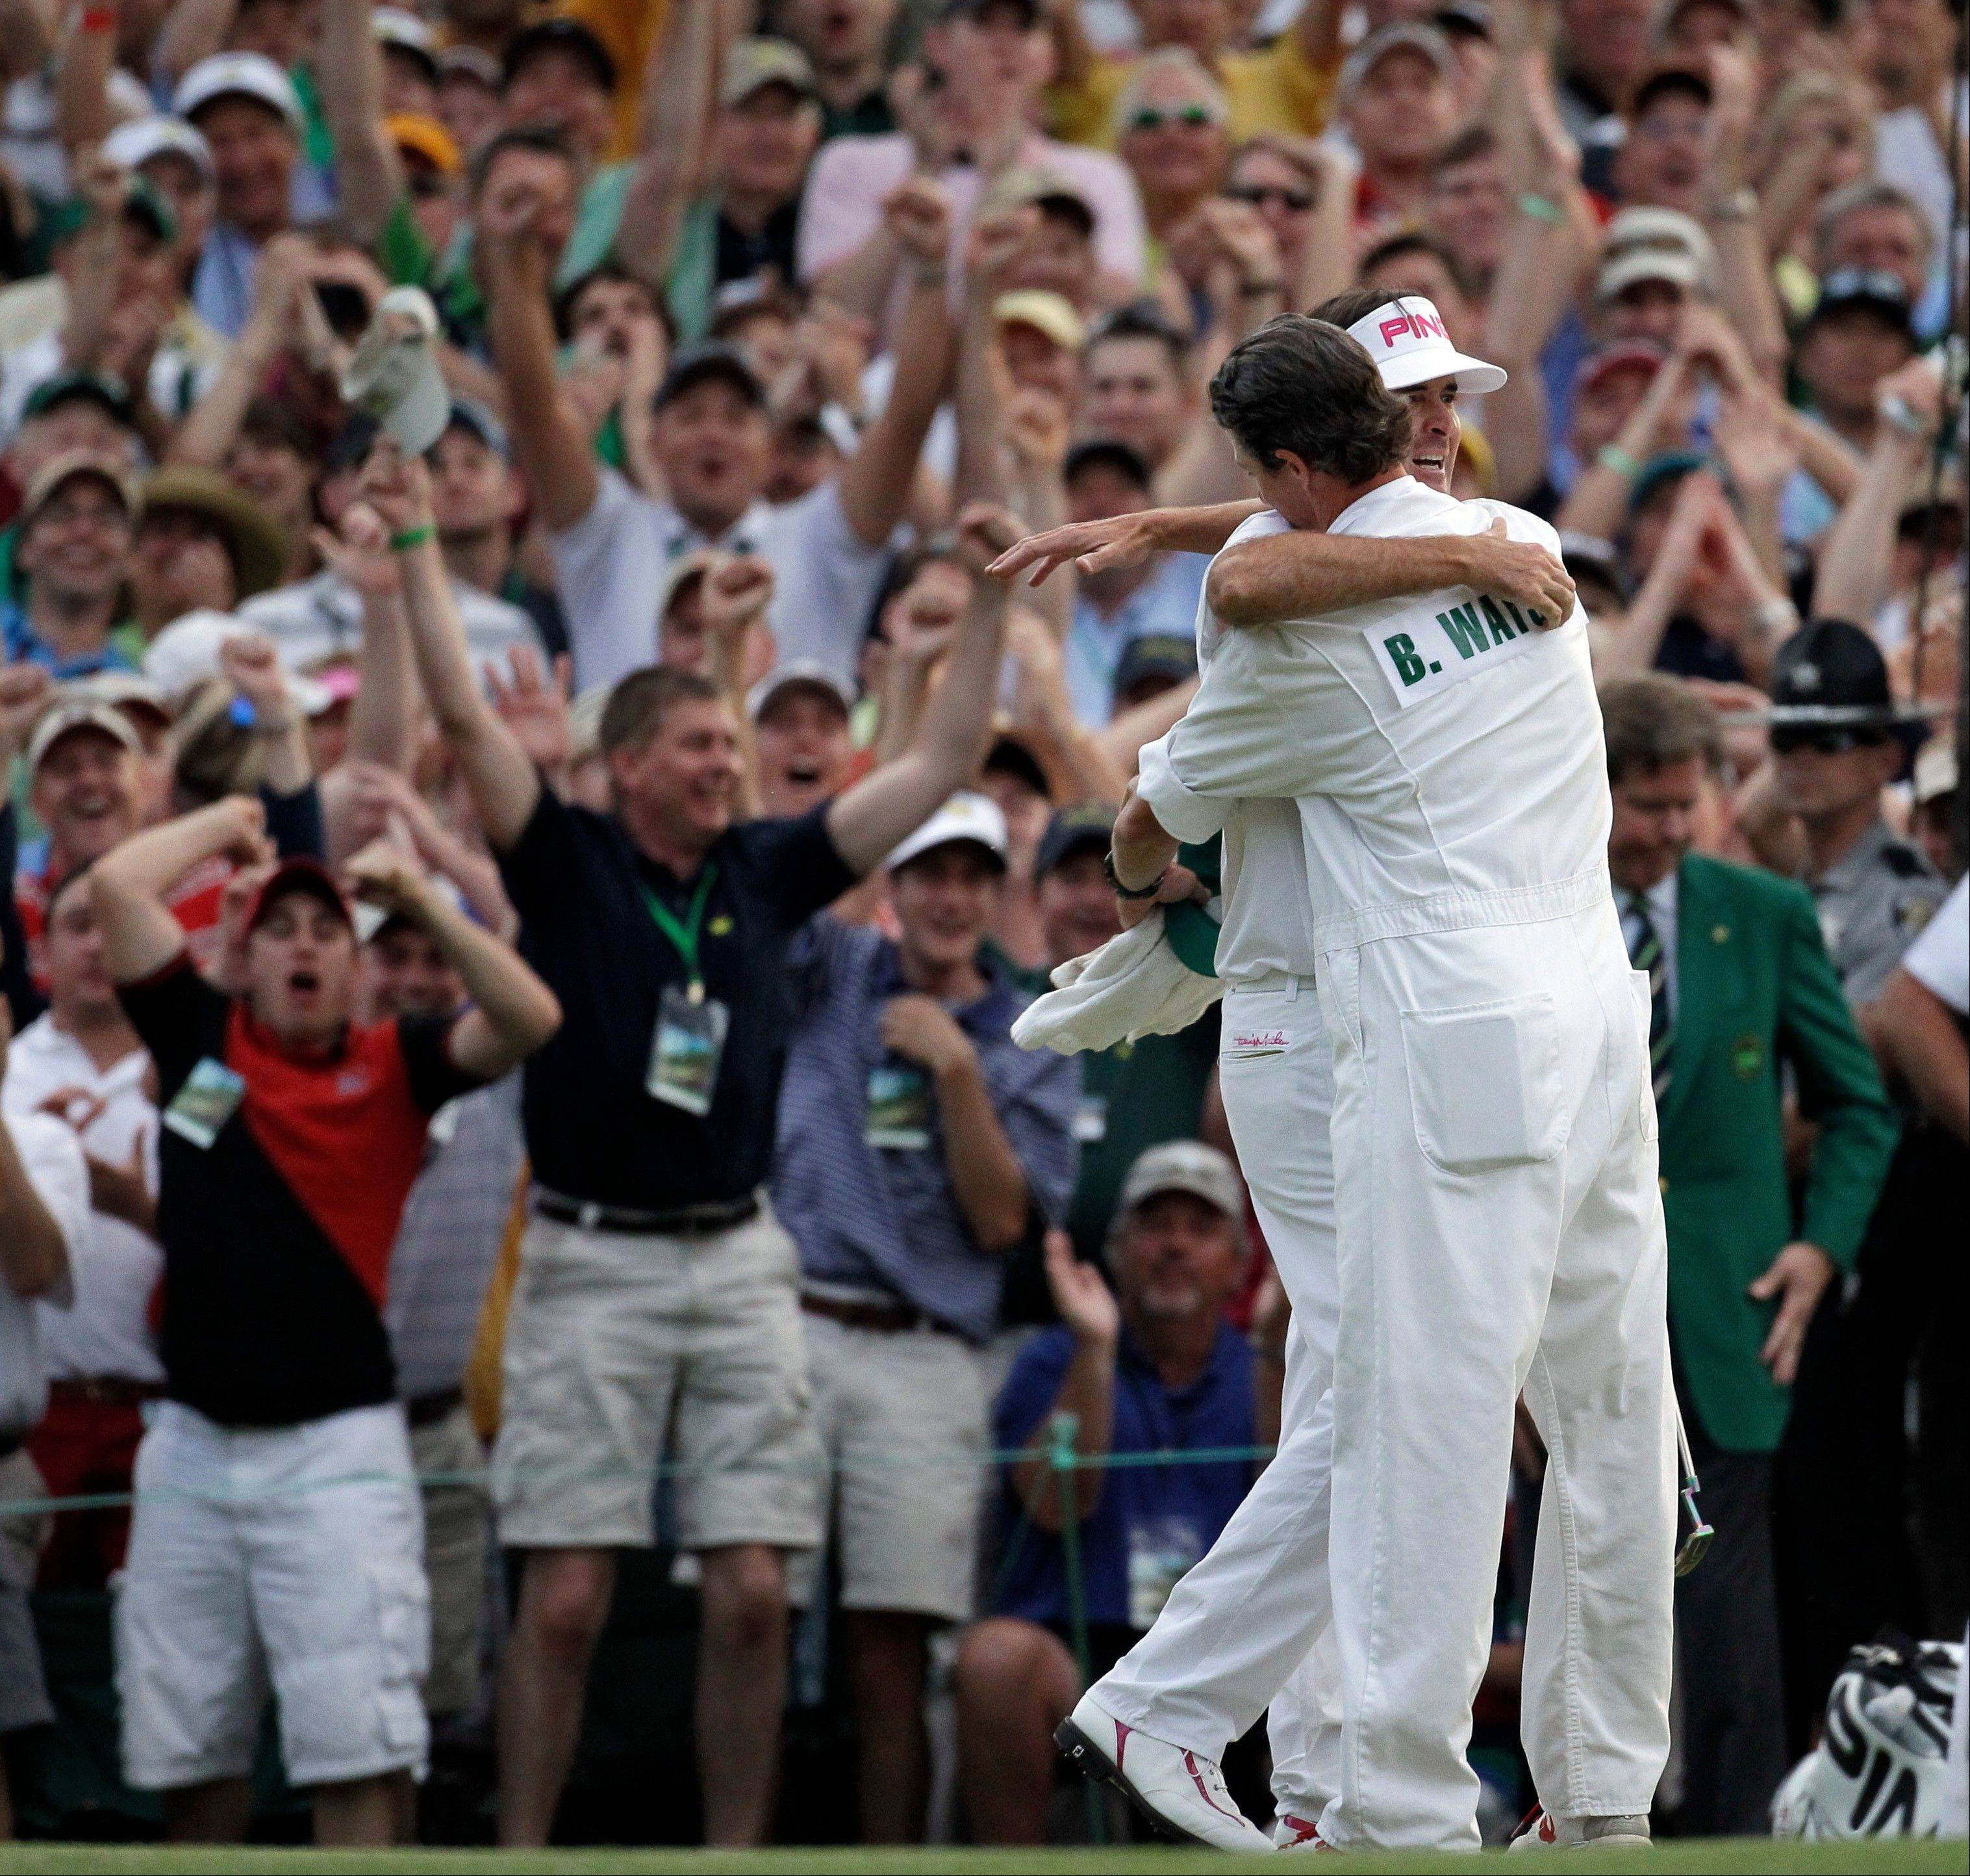 Bubba Watson, here hugging his caddie Ted Scott after winning the Masters golf tournament last April, never forgot the wager he made with Webb Simpson's caddie.